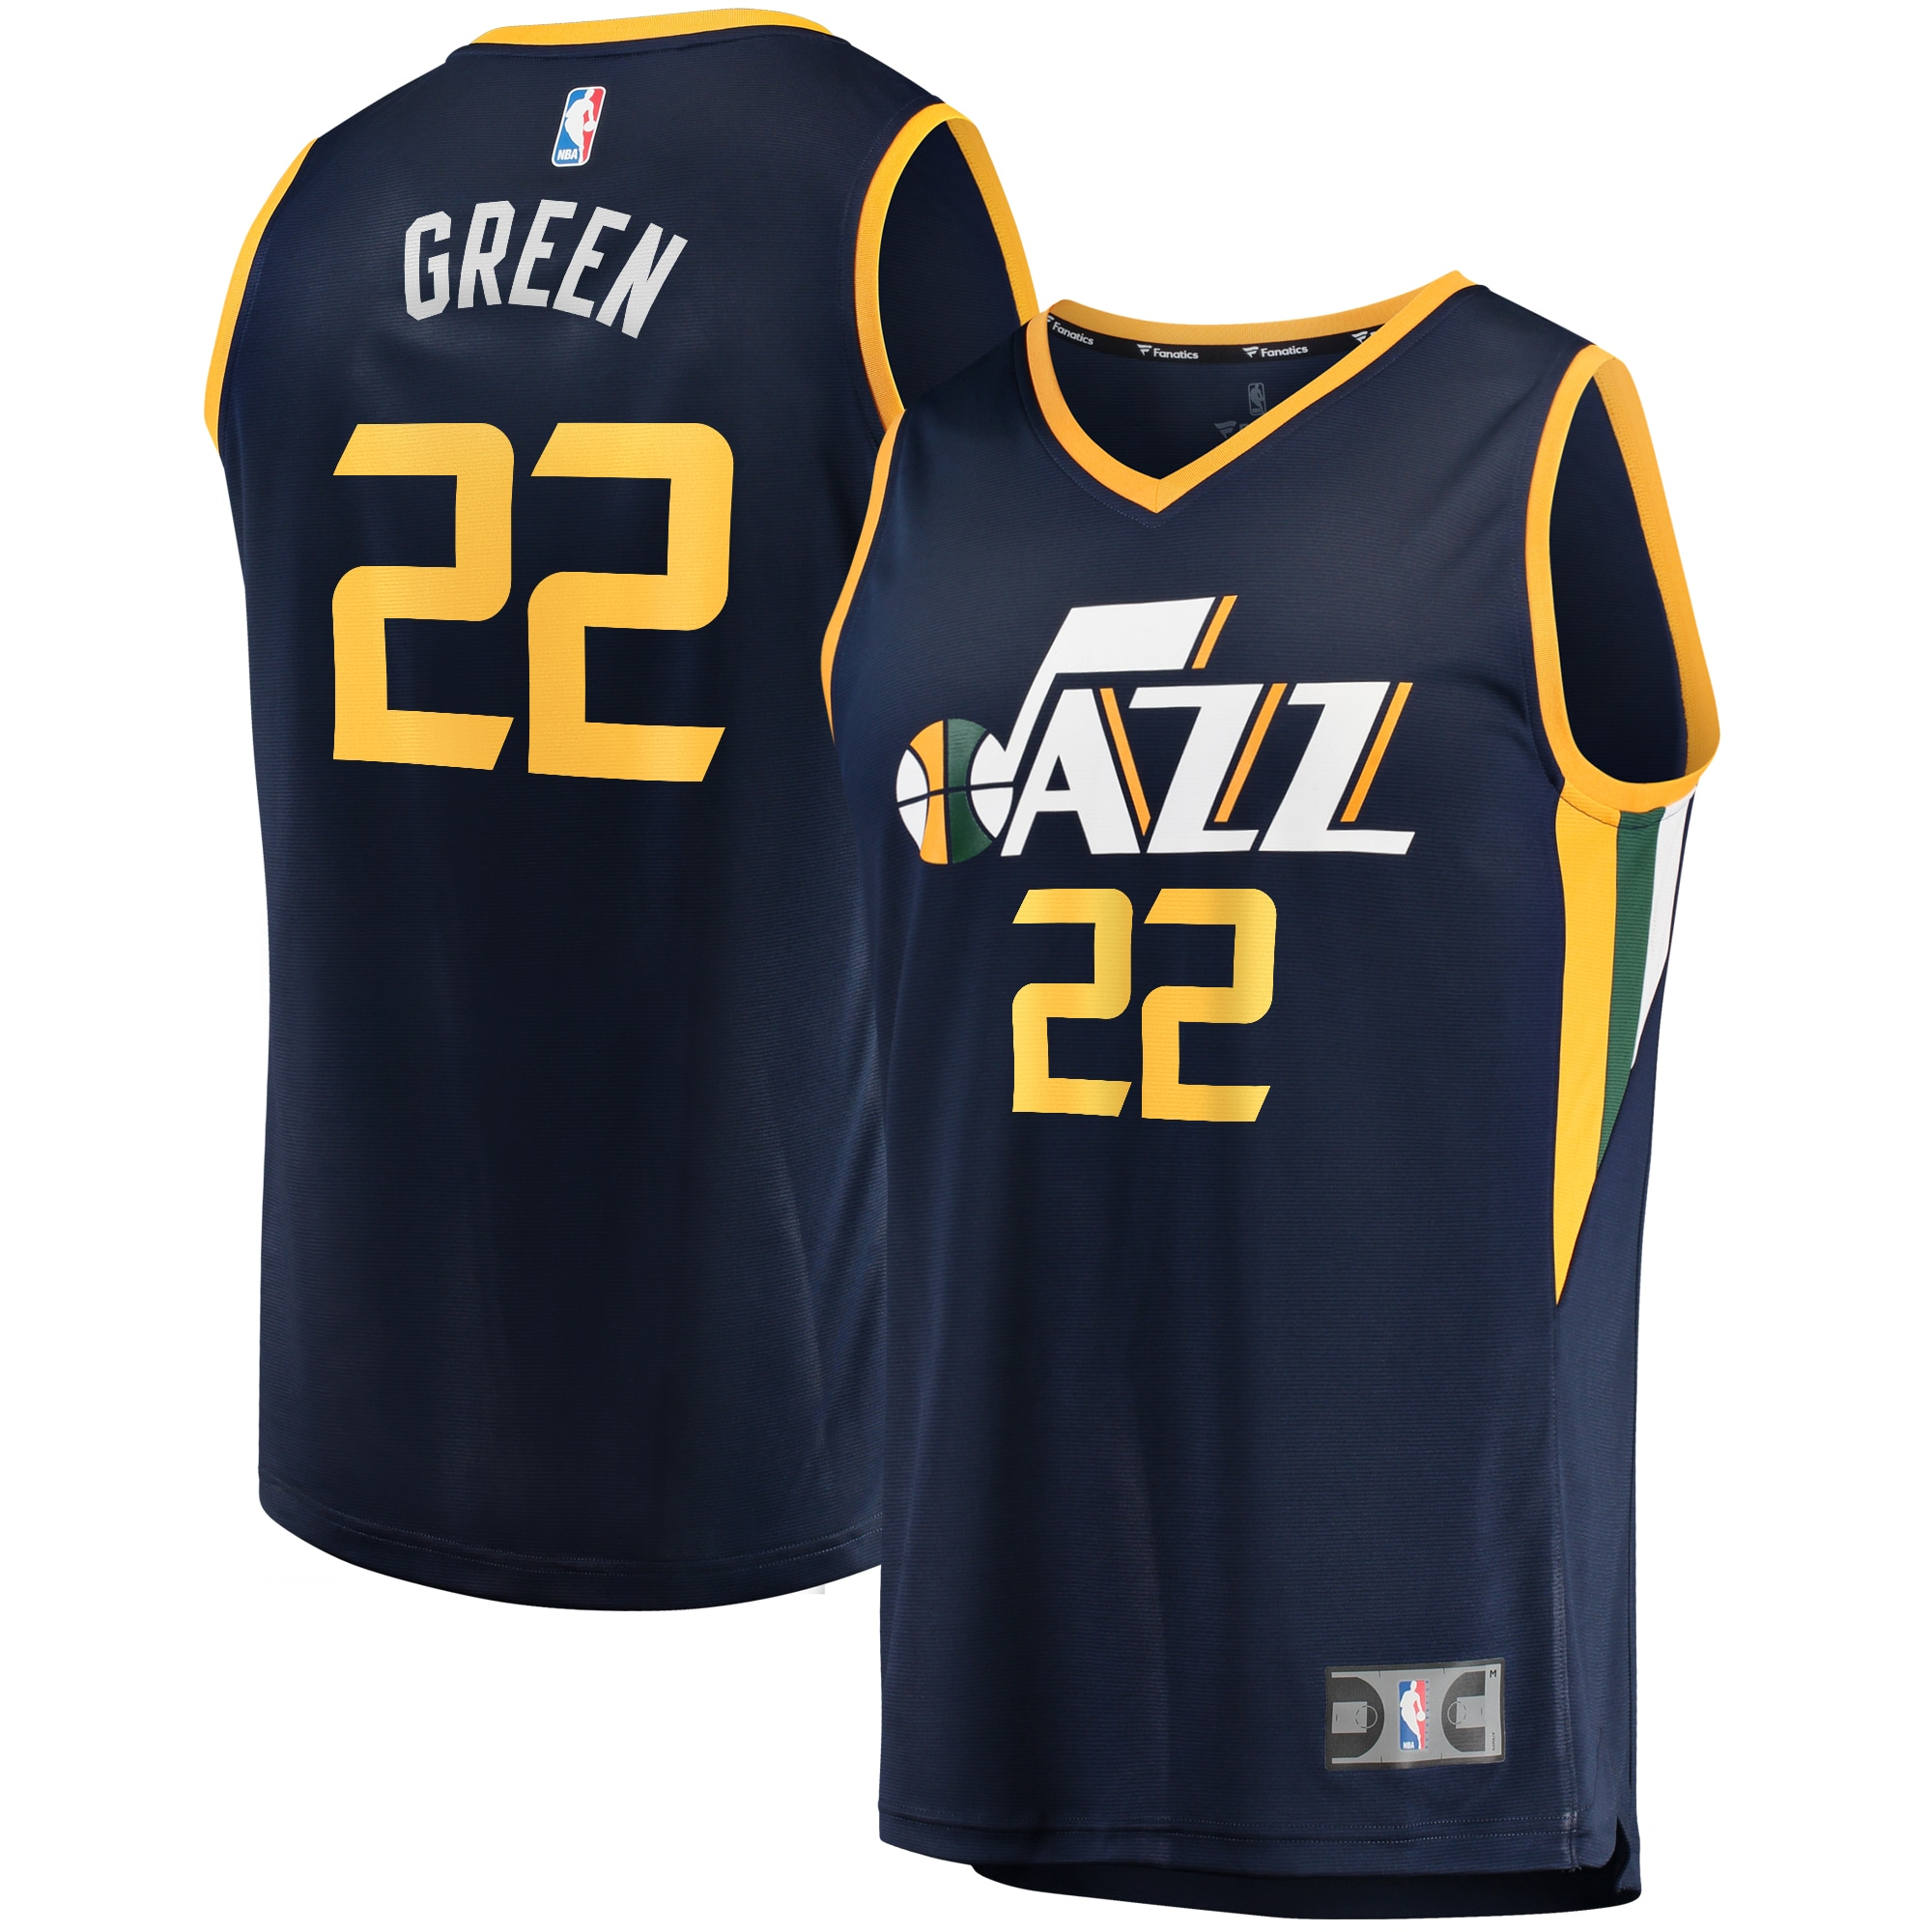 Jeff Green Utah Jazz Fanatics Branded Fast Break Player Jersey - Icon Edition - Navy